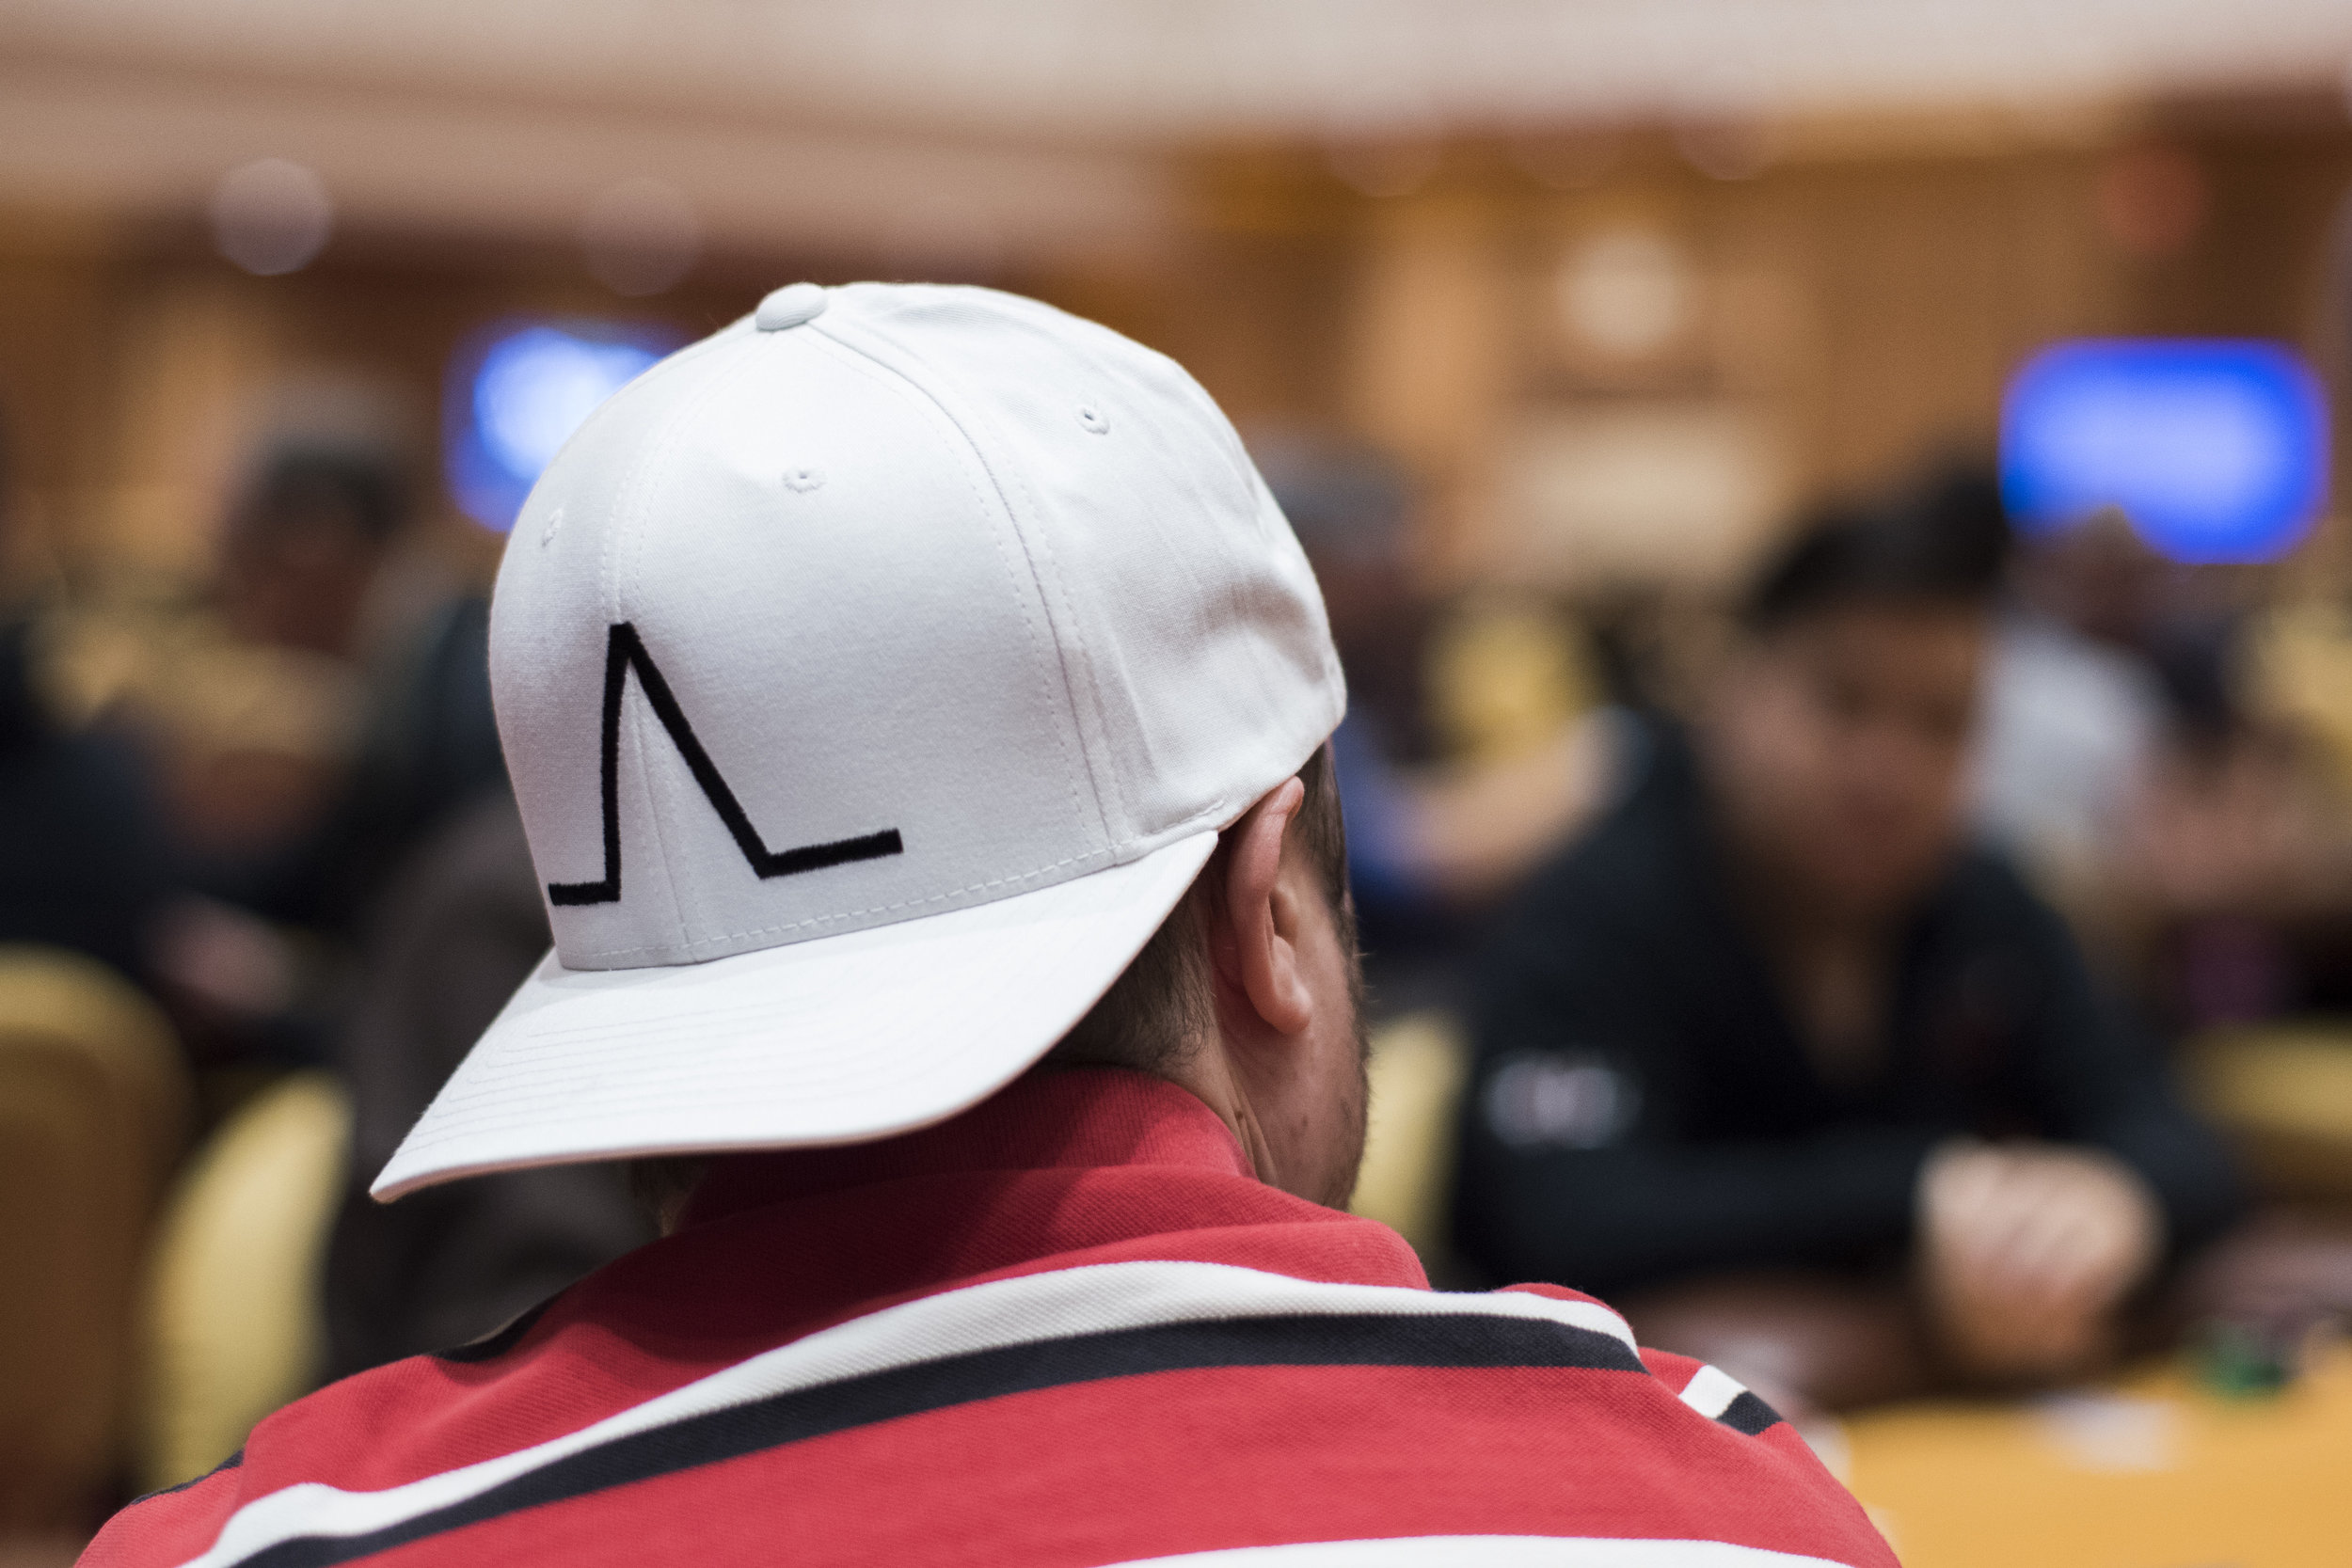 wed 26 - $235 NLH Knockout Black chip bounty